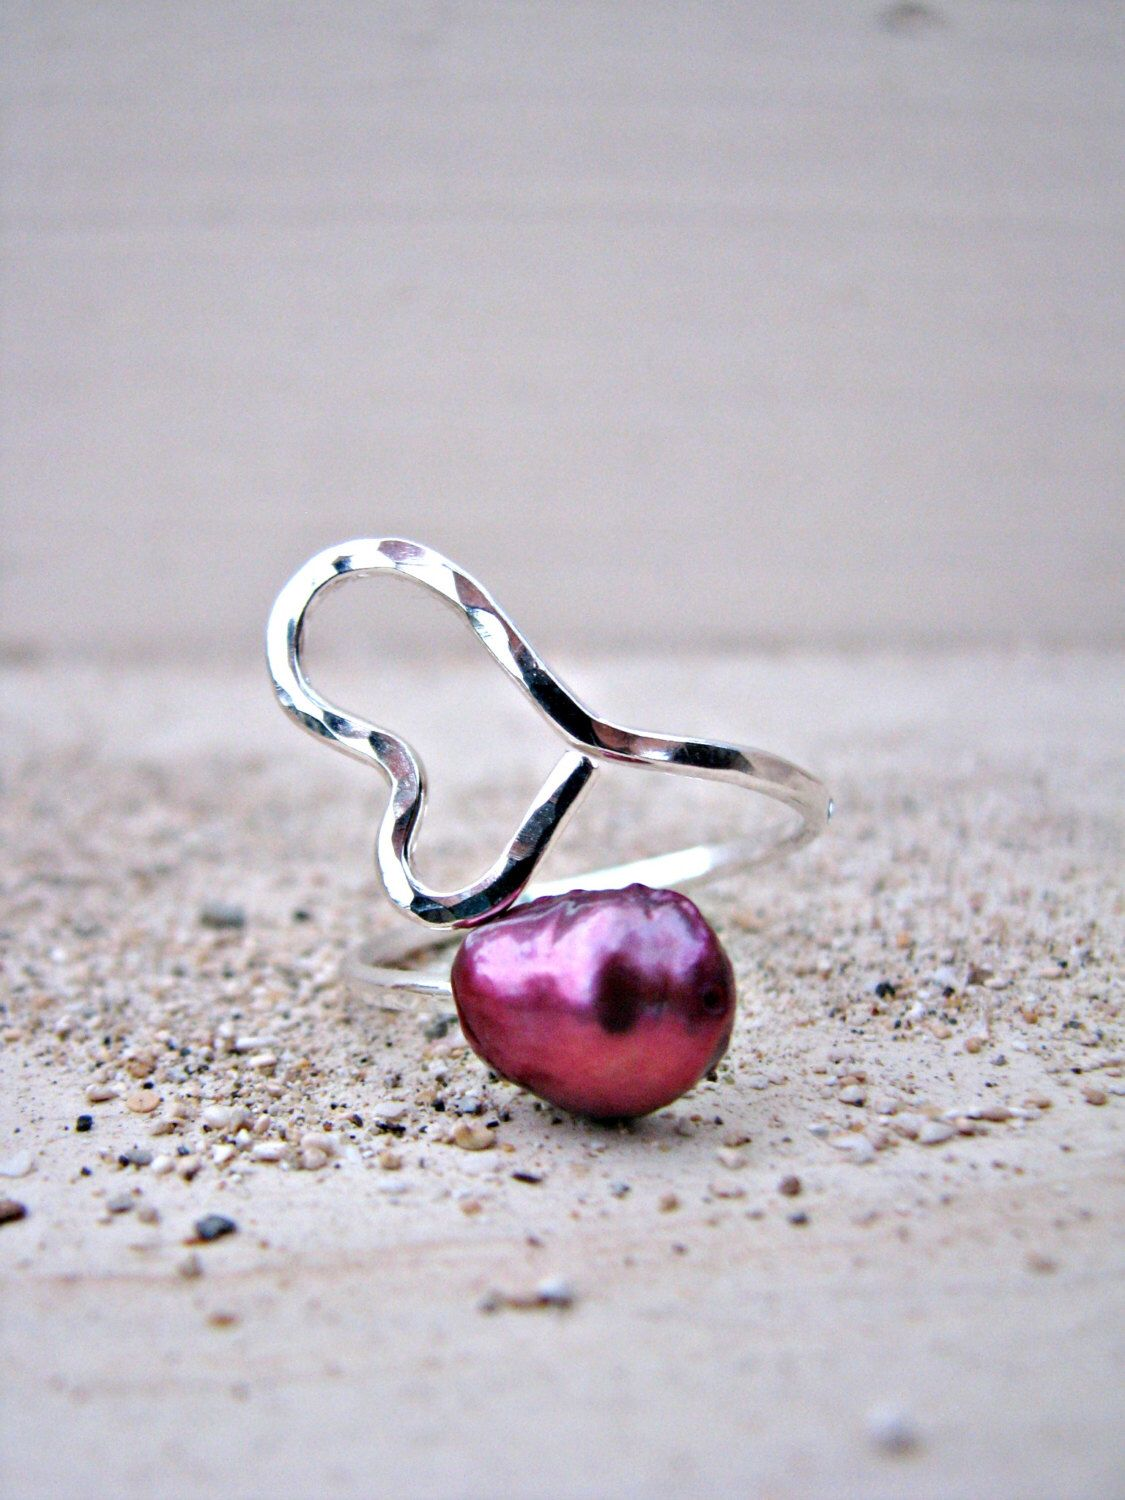 Silver Heart Ring, Heart Pearl Ring, Pink Pearl Silver Ring, Hammered Silver Ring, Adjustable Ring, Wire-Wrapped Ring, Magenta, Fuschia by PukoaPacificPearls on Etsy https://www.etsy.com/listing/207806323/silver-heart-ring-heart-pearl-ring-pink